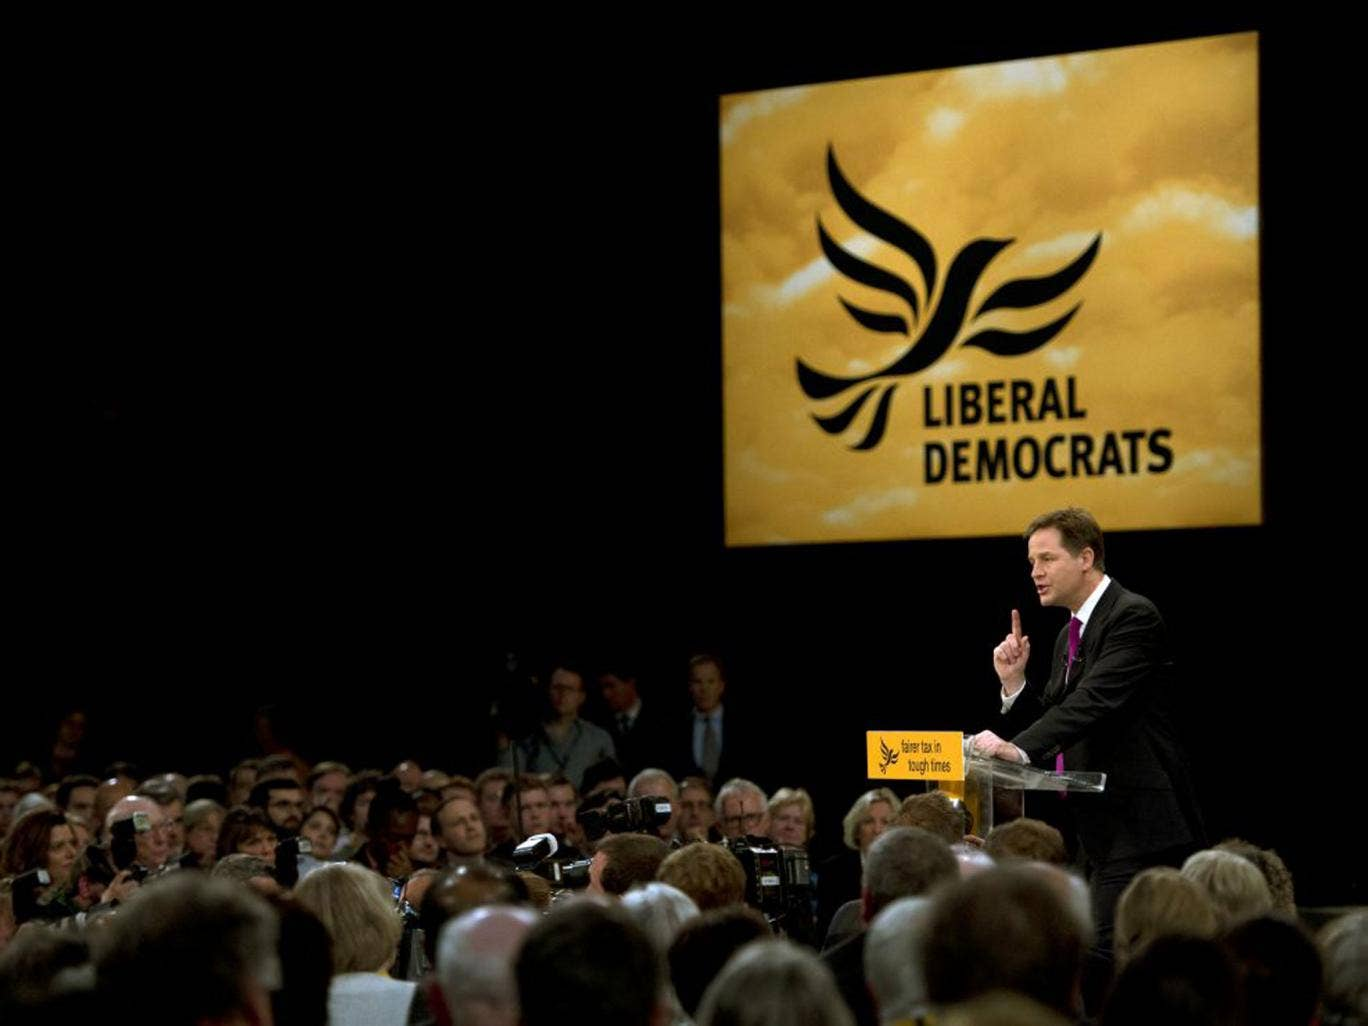 Mr Clegg will reassure his party that it will fight the 2015 election on a distinctive Lib Dem economic policy